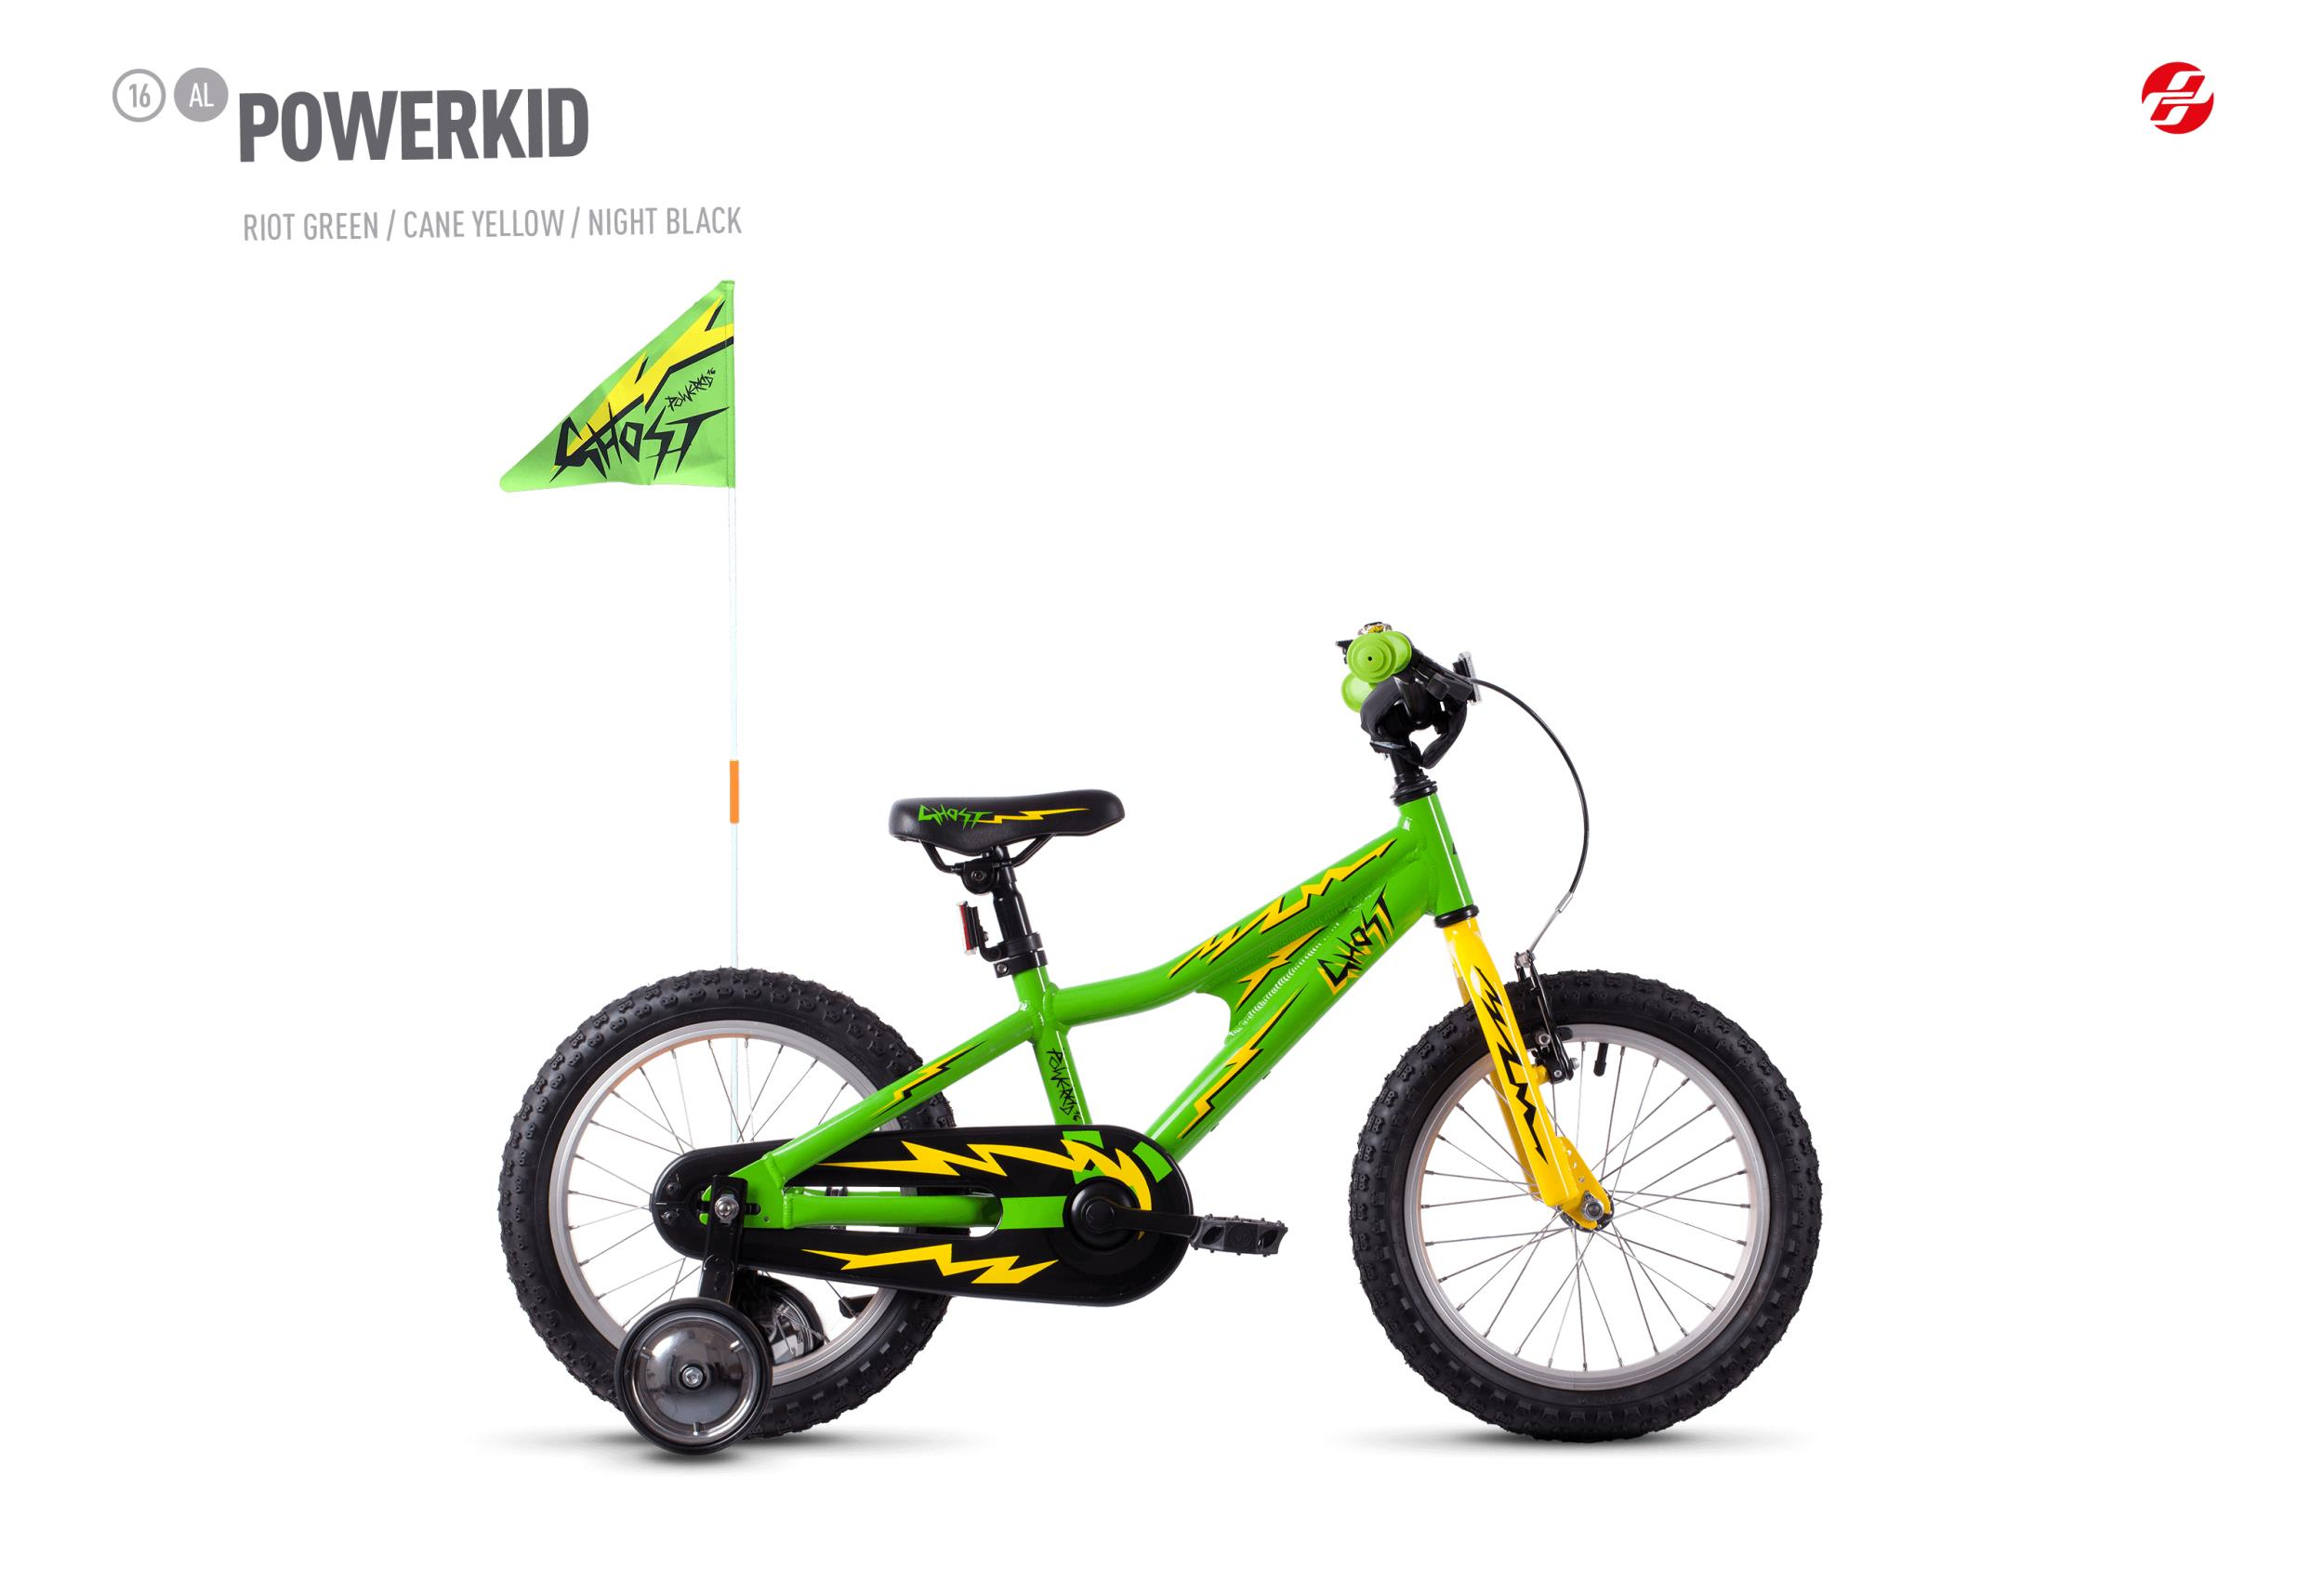 GHOST POWERKID AL 16 K - 16 -  riot green / cane yellow / night black 2019